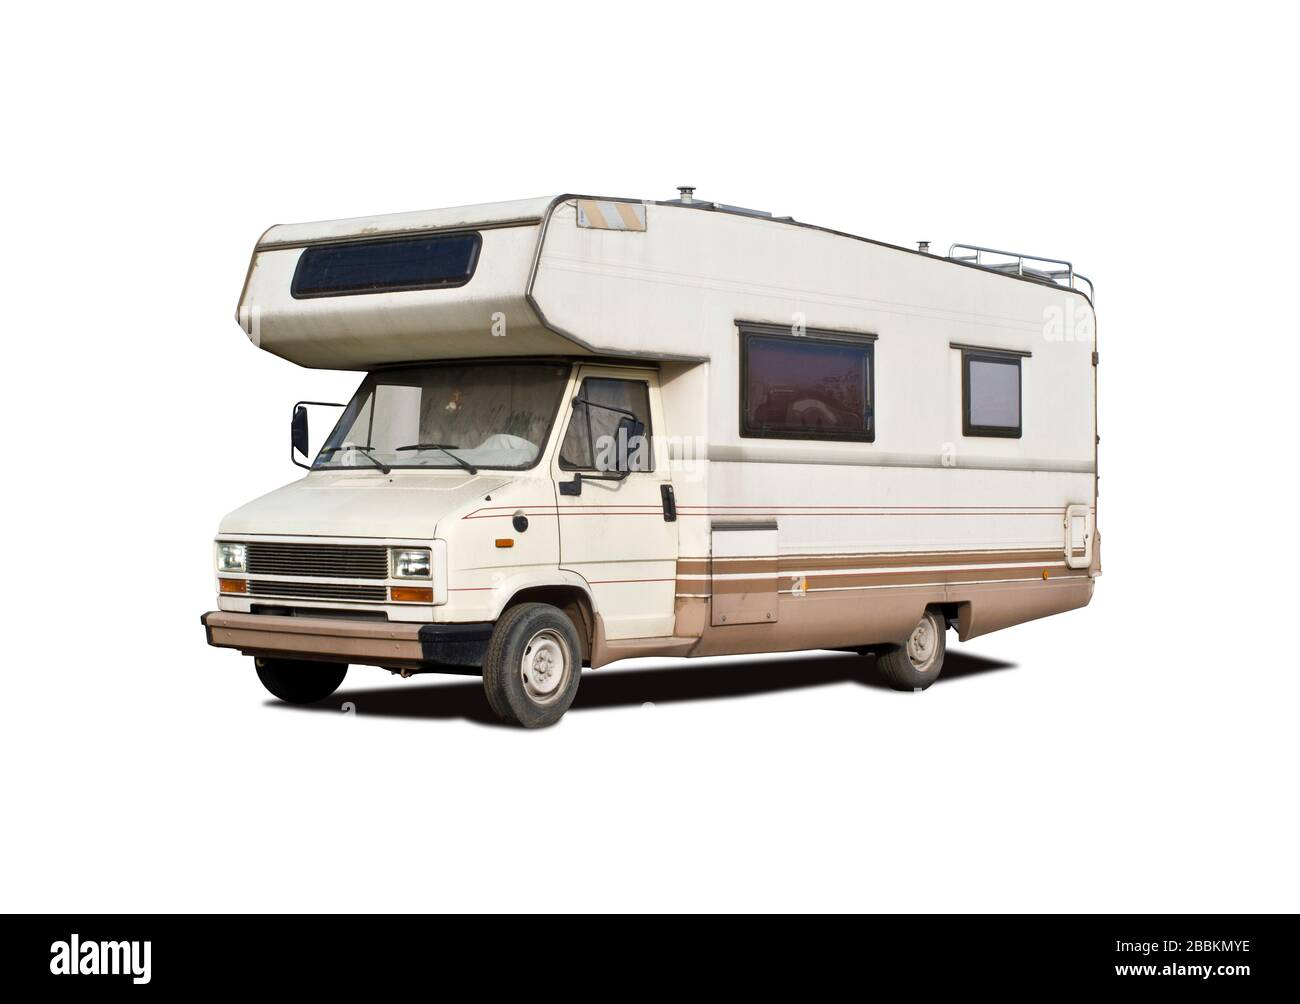 Old Motorhome Side View Isolated On White Stock Photo Alamy